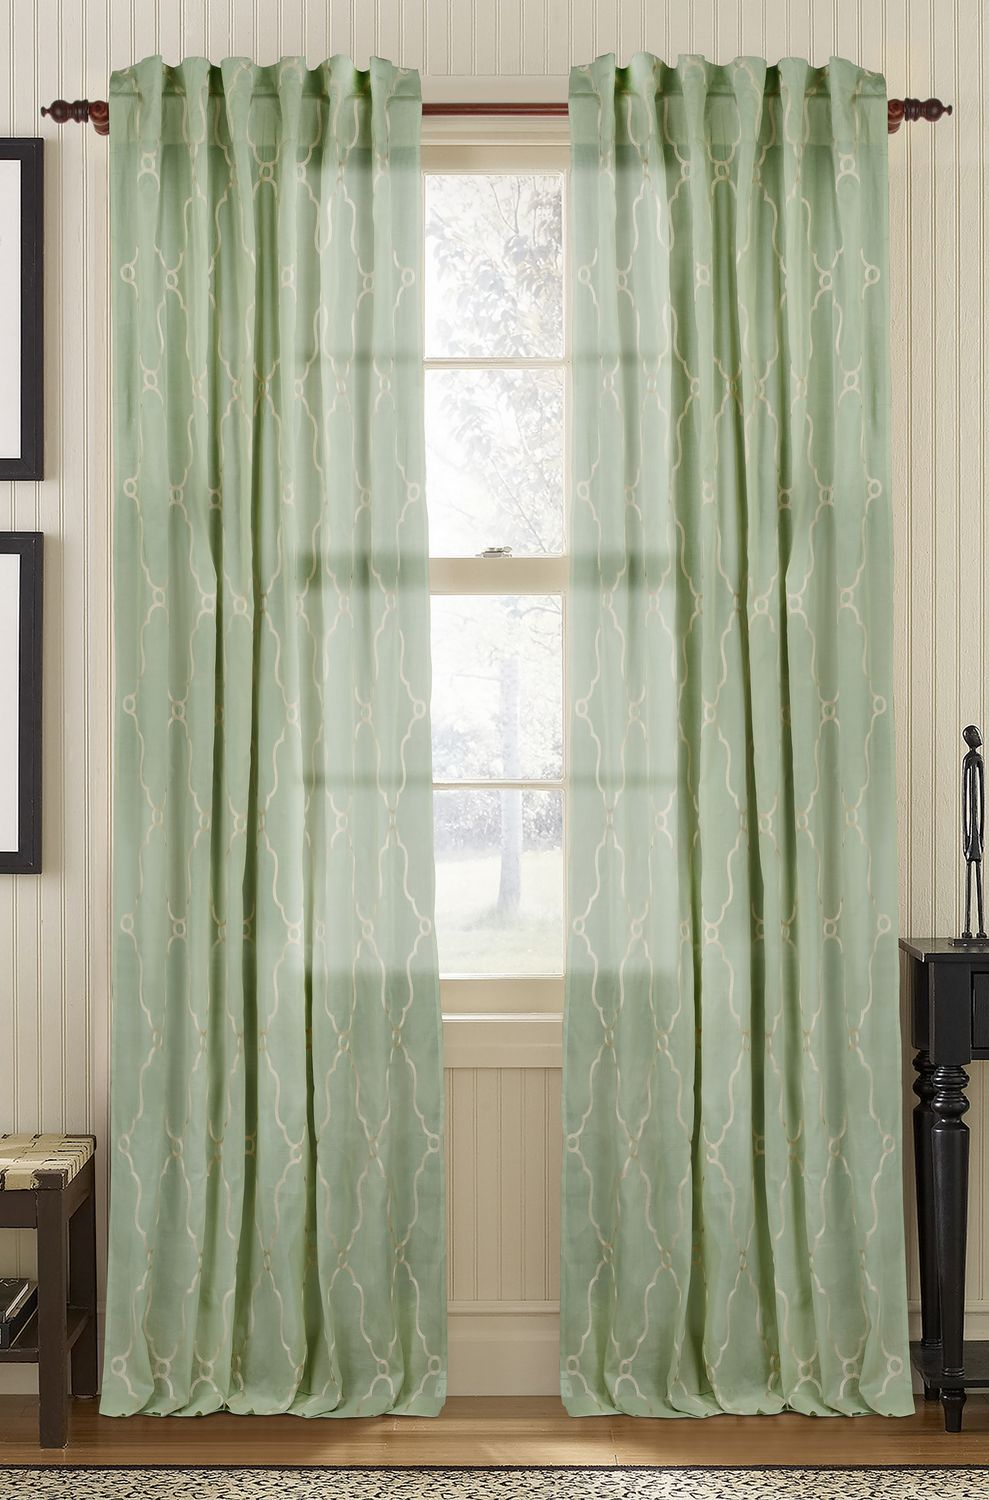 scarf door drapes curtain shade kitchen window bathroom divider sheer stars panel patten product